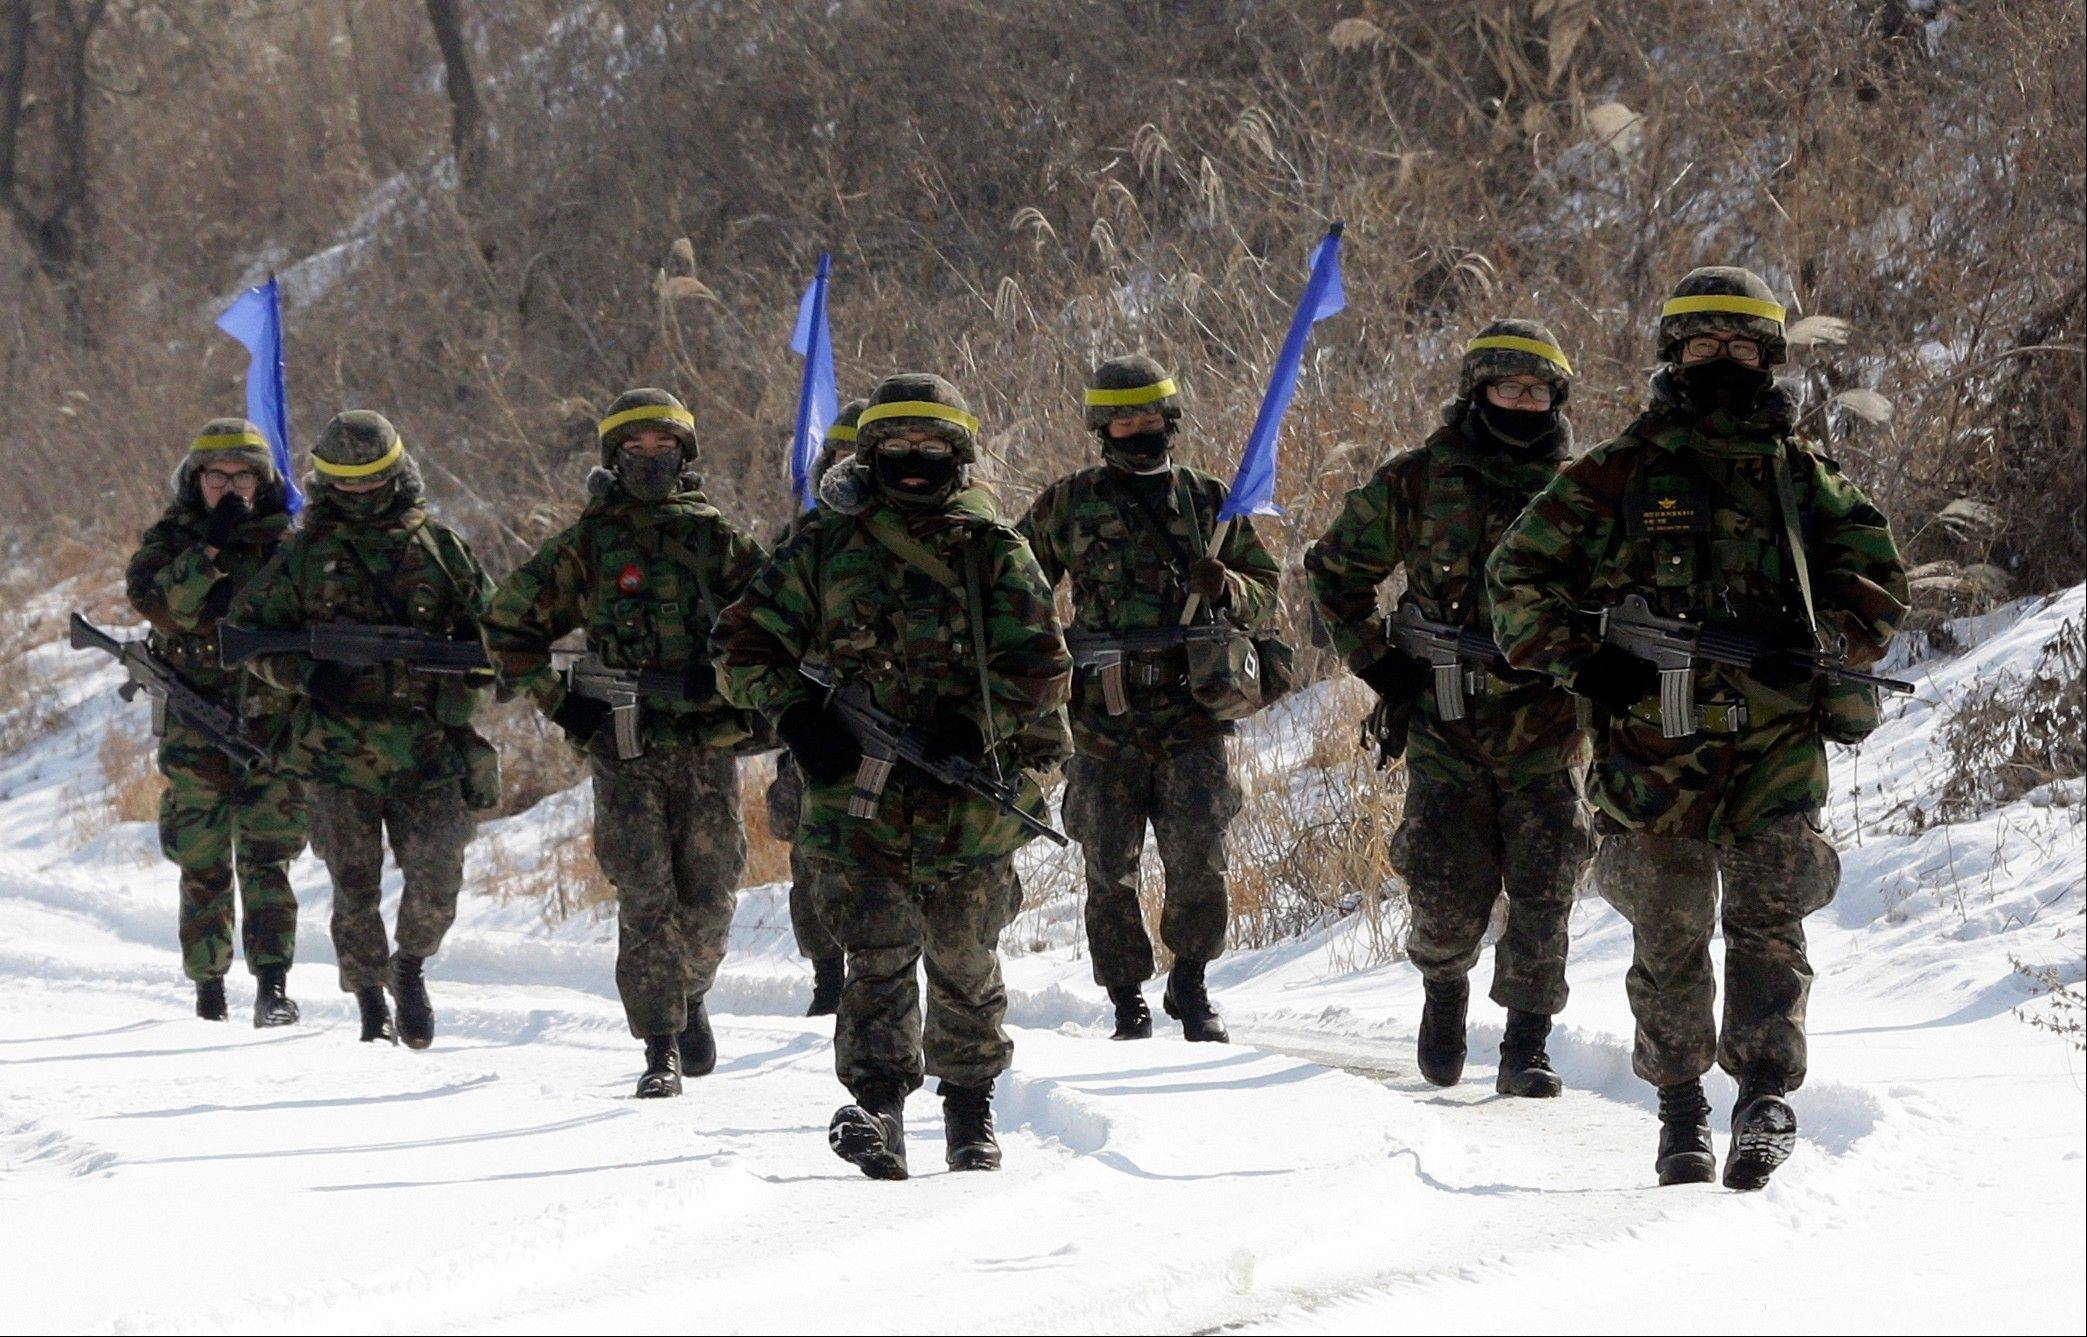 Neighbors prep militaries after N. Korean nuclear test